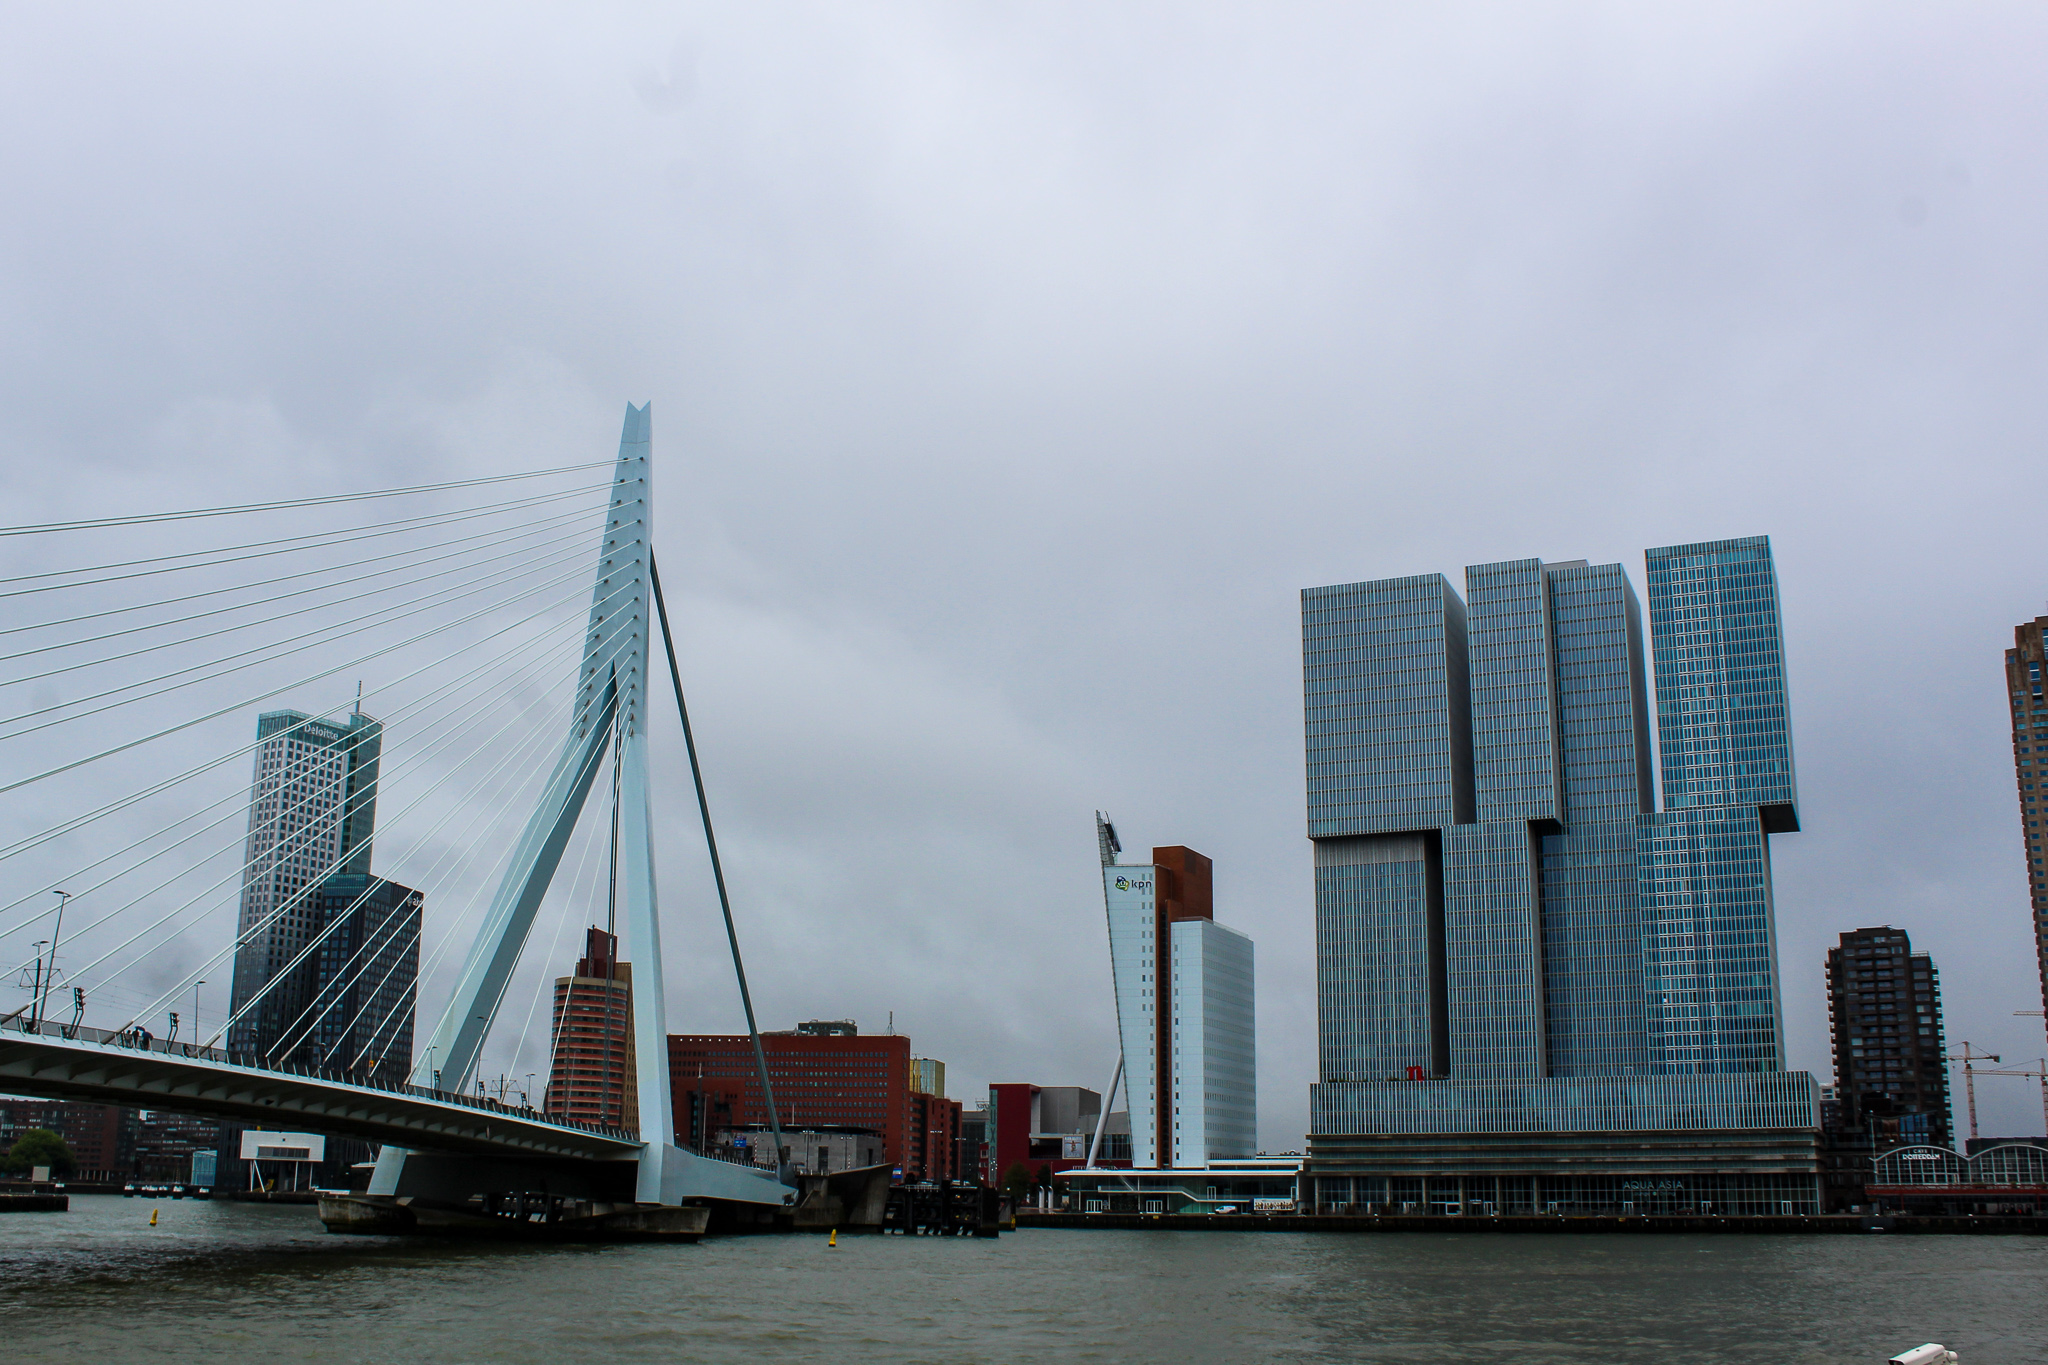 amsterdam day trips include big cities such as rotterdam